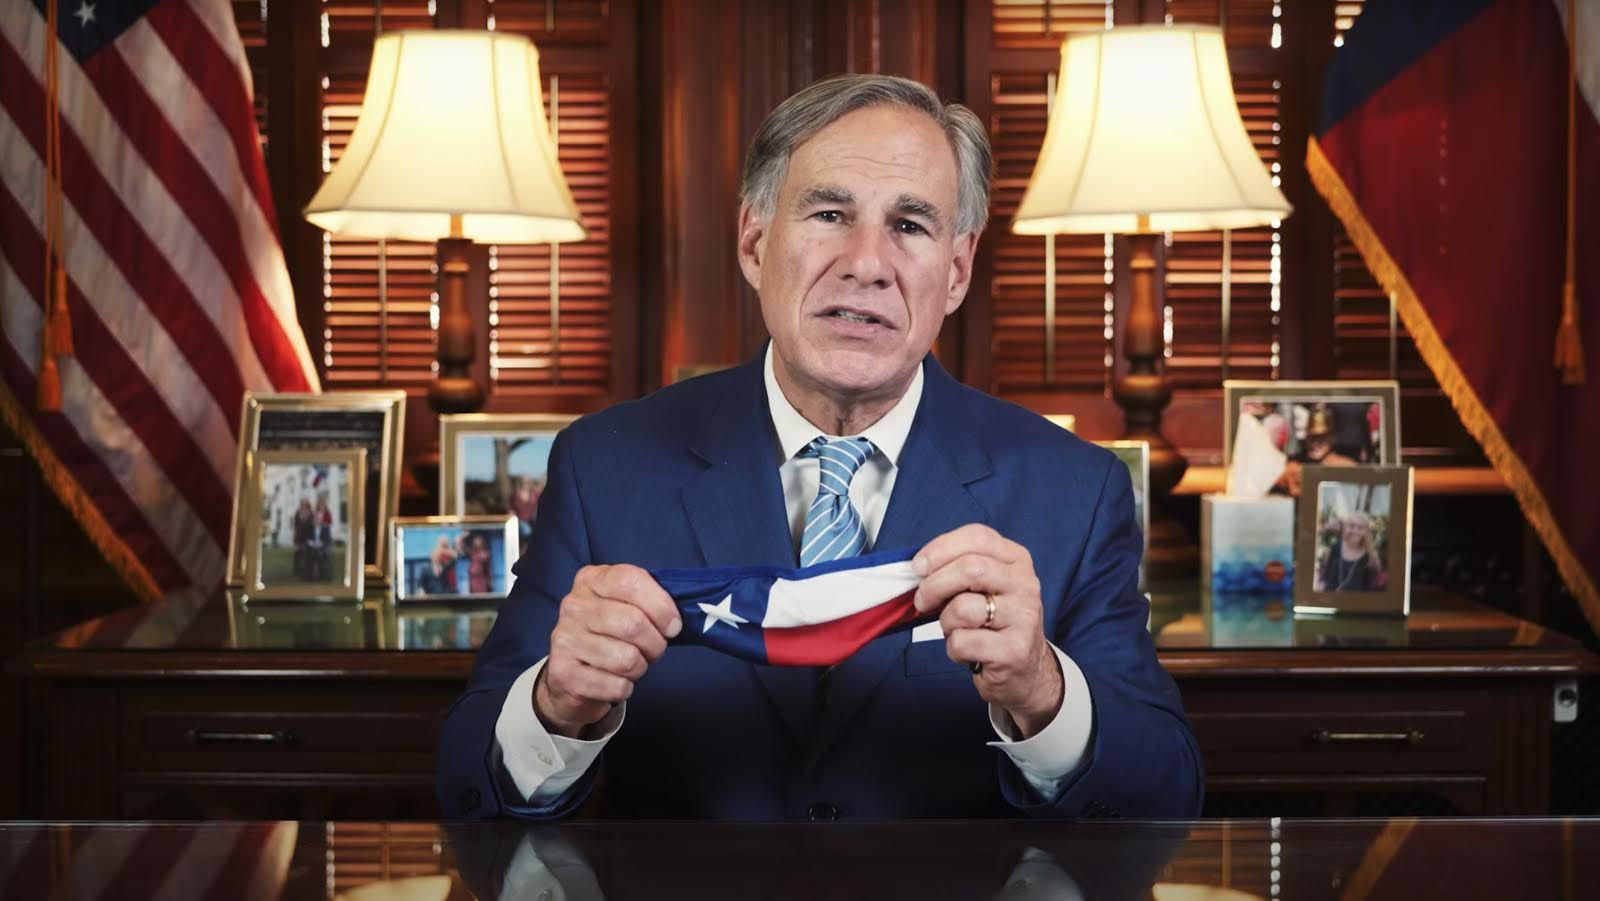 On Thursday, Gov. Greg Abbott announced his statewide order requiring Texans to wear masks in public and letting local officials restrict outdoor gatherings of more than 10 people.